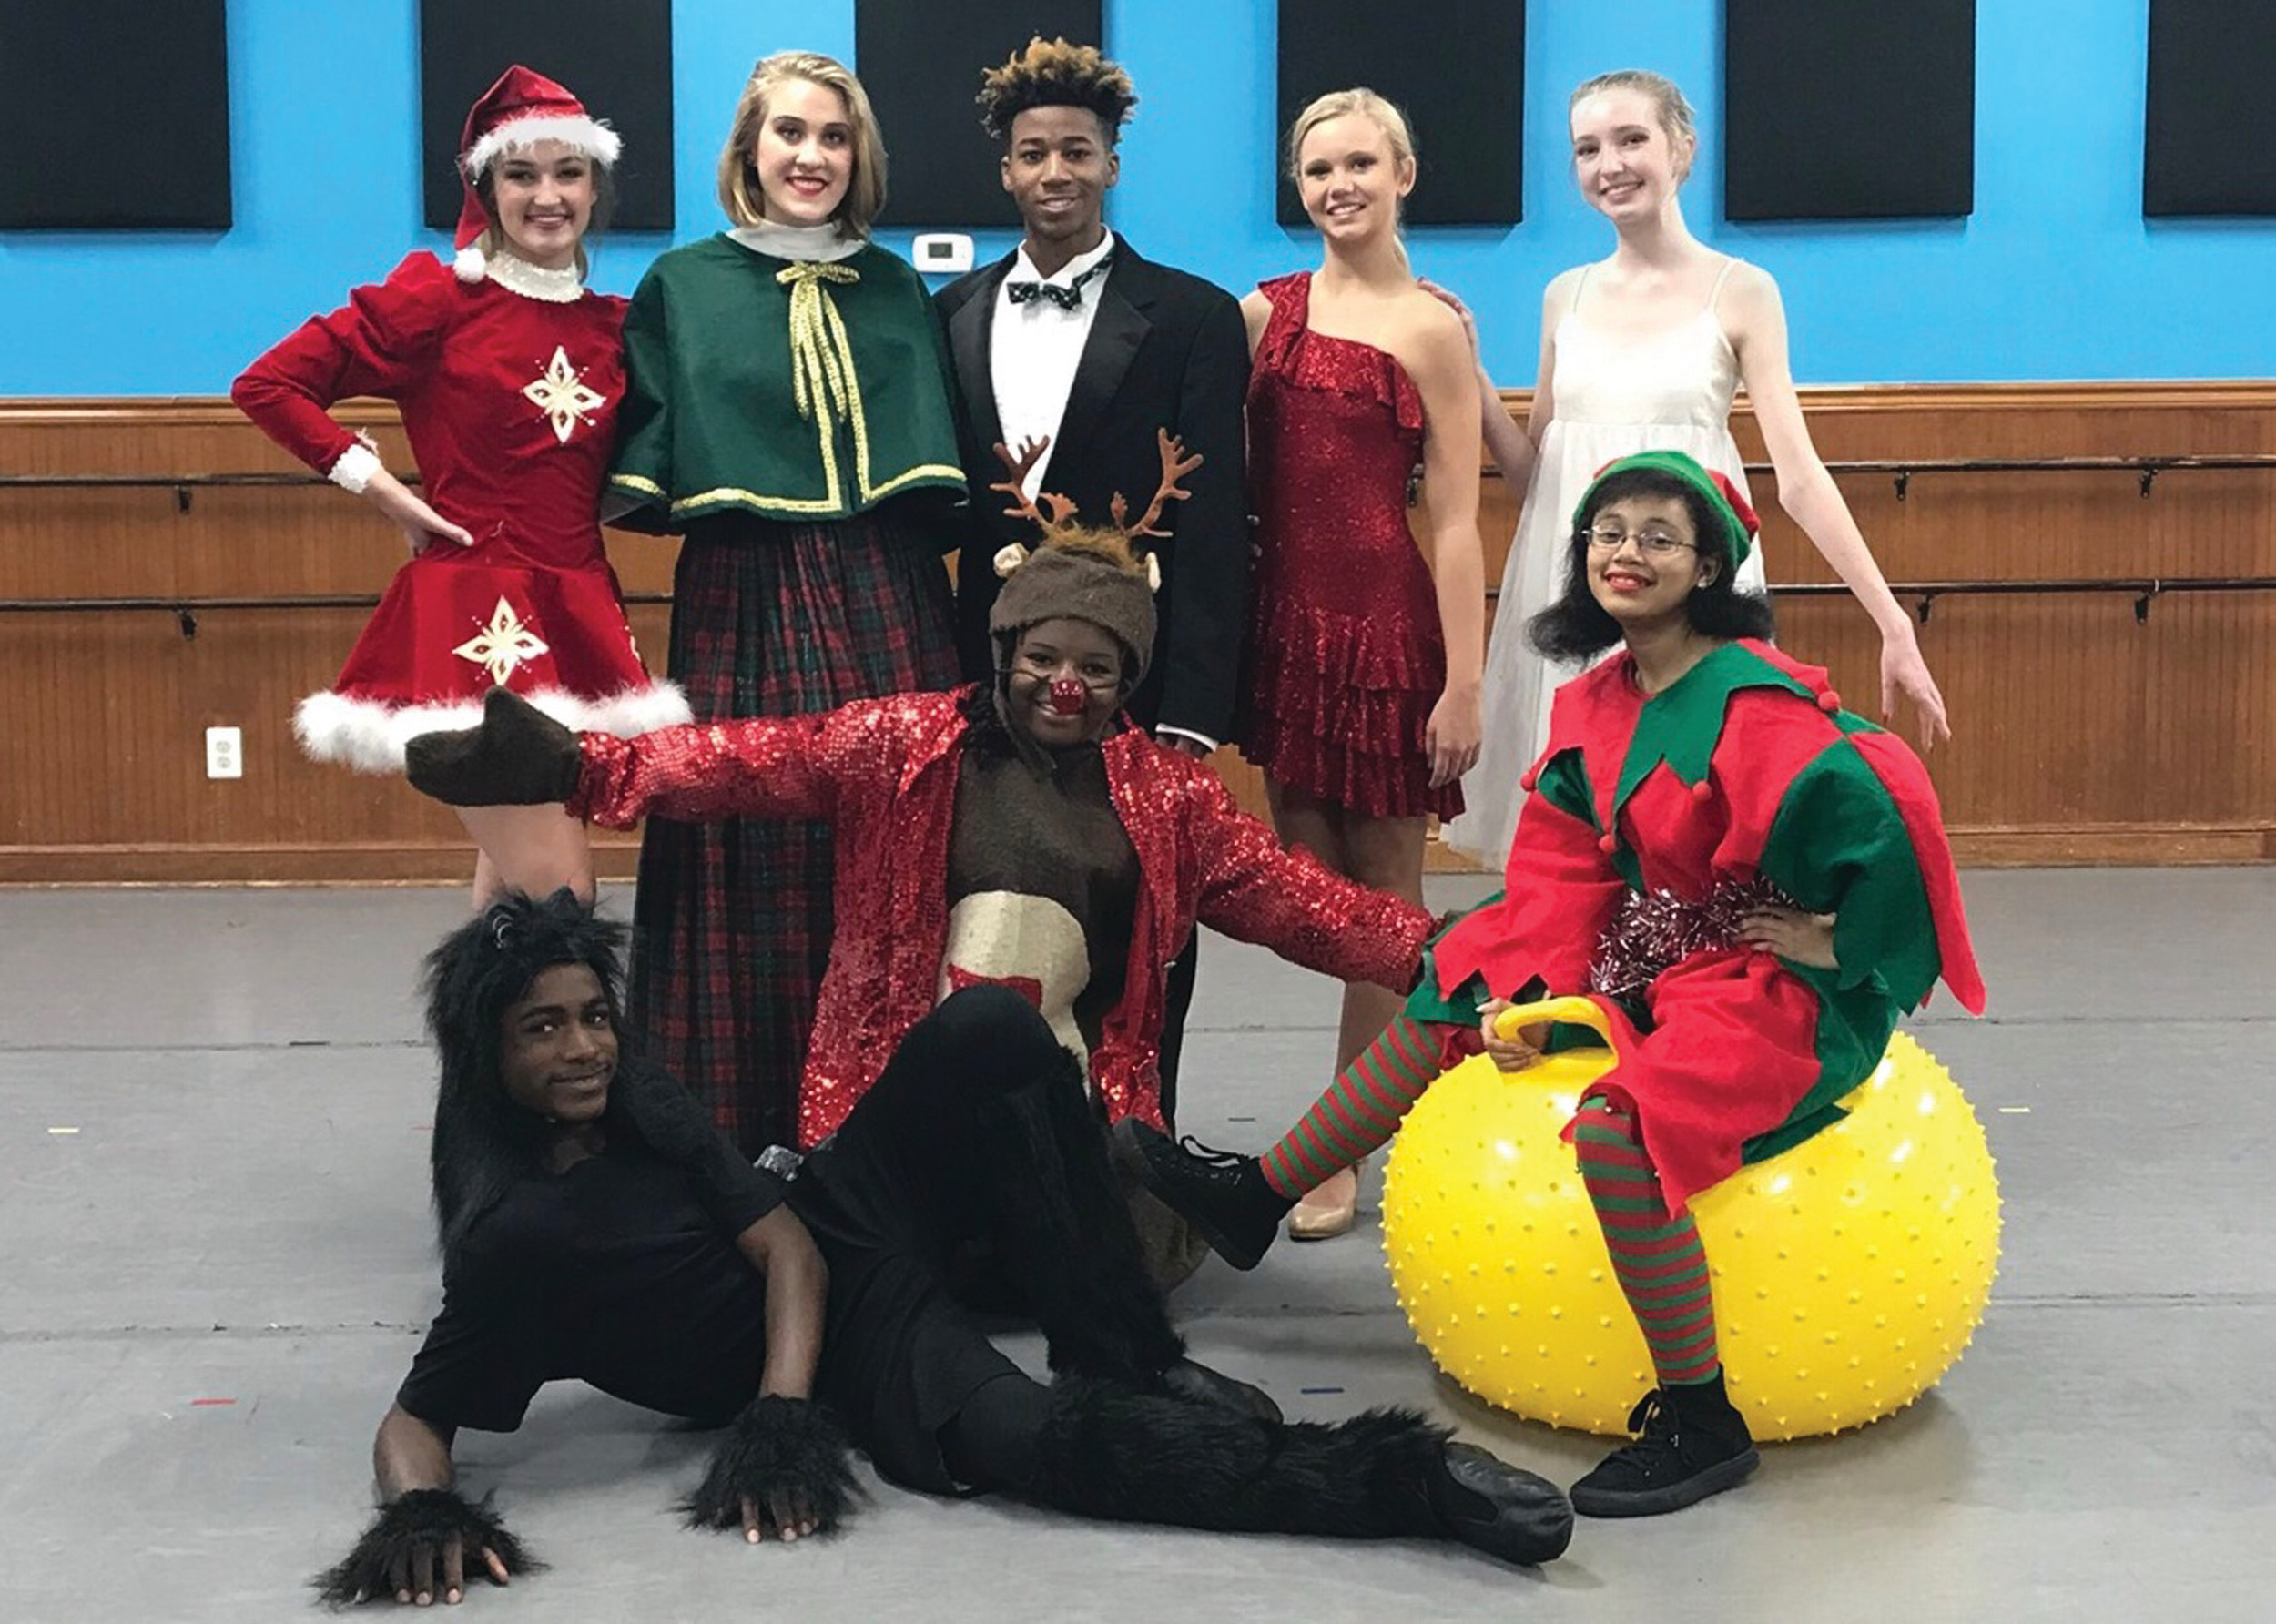 Joining the Sumter Civic Dance Company will be the choirs from Sumter and Lee Central high schools and Bethesda Church of God. Santa's reindeer, Santa, the Grinch, Cats from the Broadway musical, can can dancers, elves, toys and more will perform in the lavish show inspired by the Radio City Music Hall Rockettes' Christmas Show.